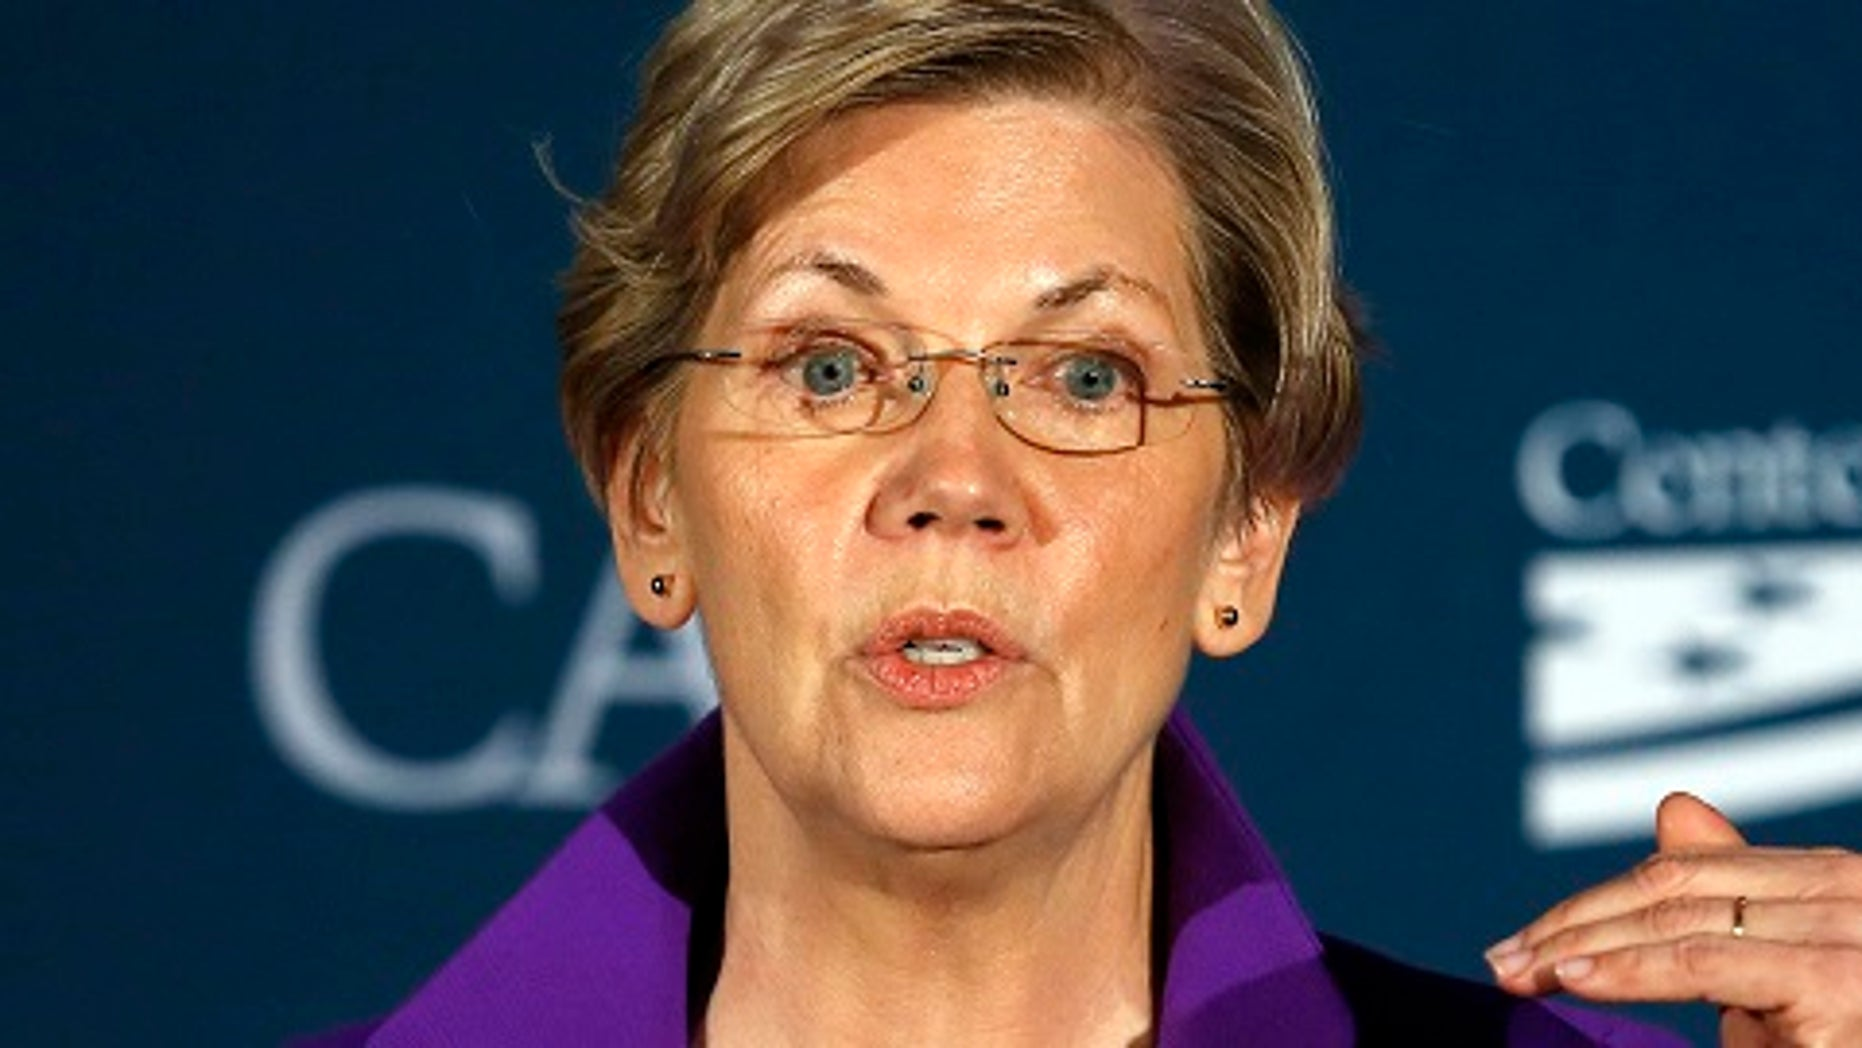 Sen. Elizabeth Warren (D-MA) speaks at the Center for American Progress' 2014 Making Progress Policy Conference in Washington Nov. 19, 2014. (REUTERS/Gary Cameron)